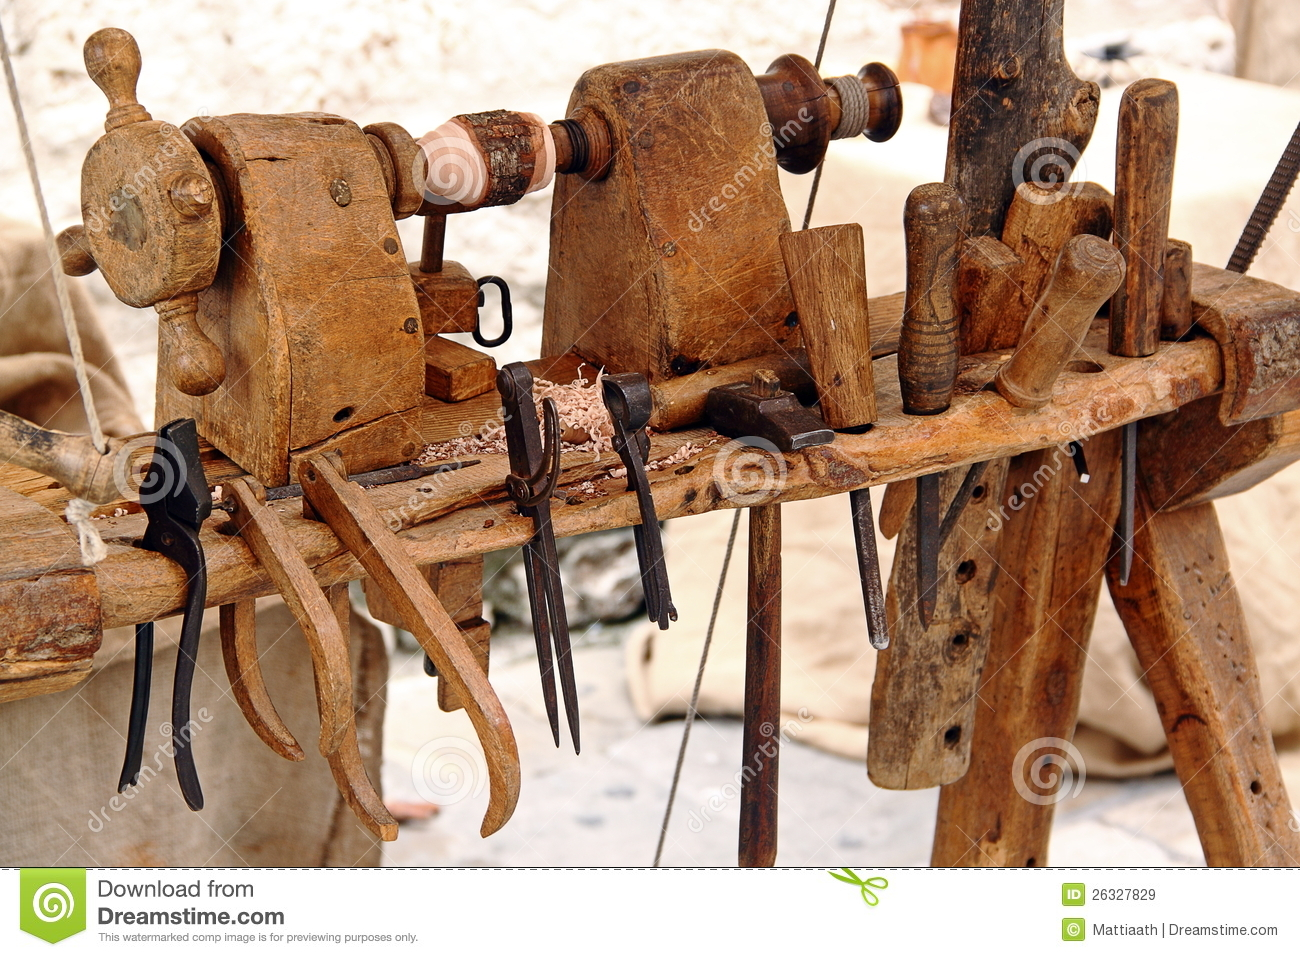 ... lathe with a set of tools for woodworking: hammer, chisels, pliers